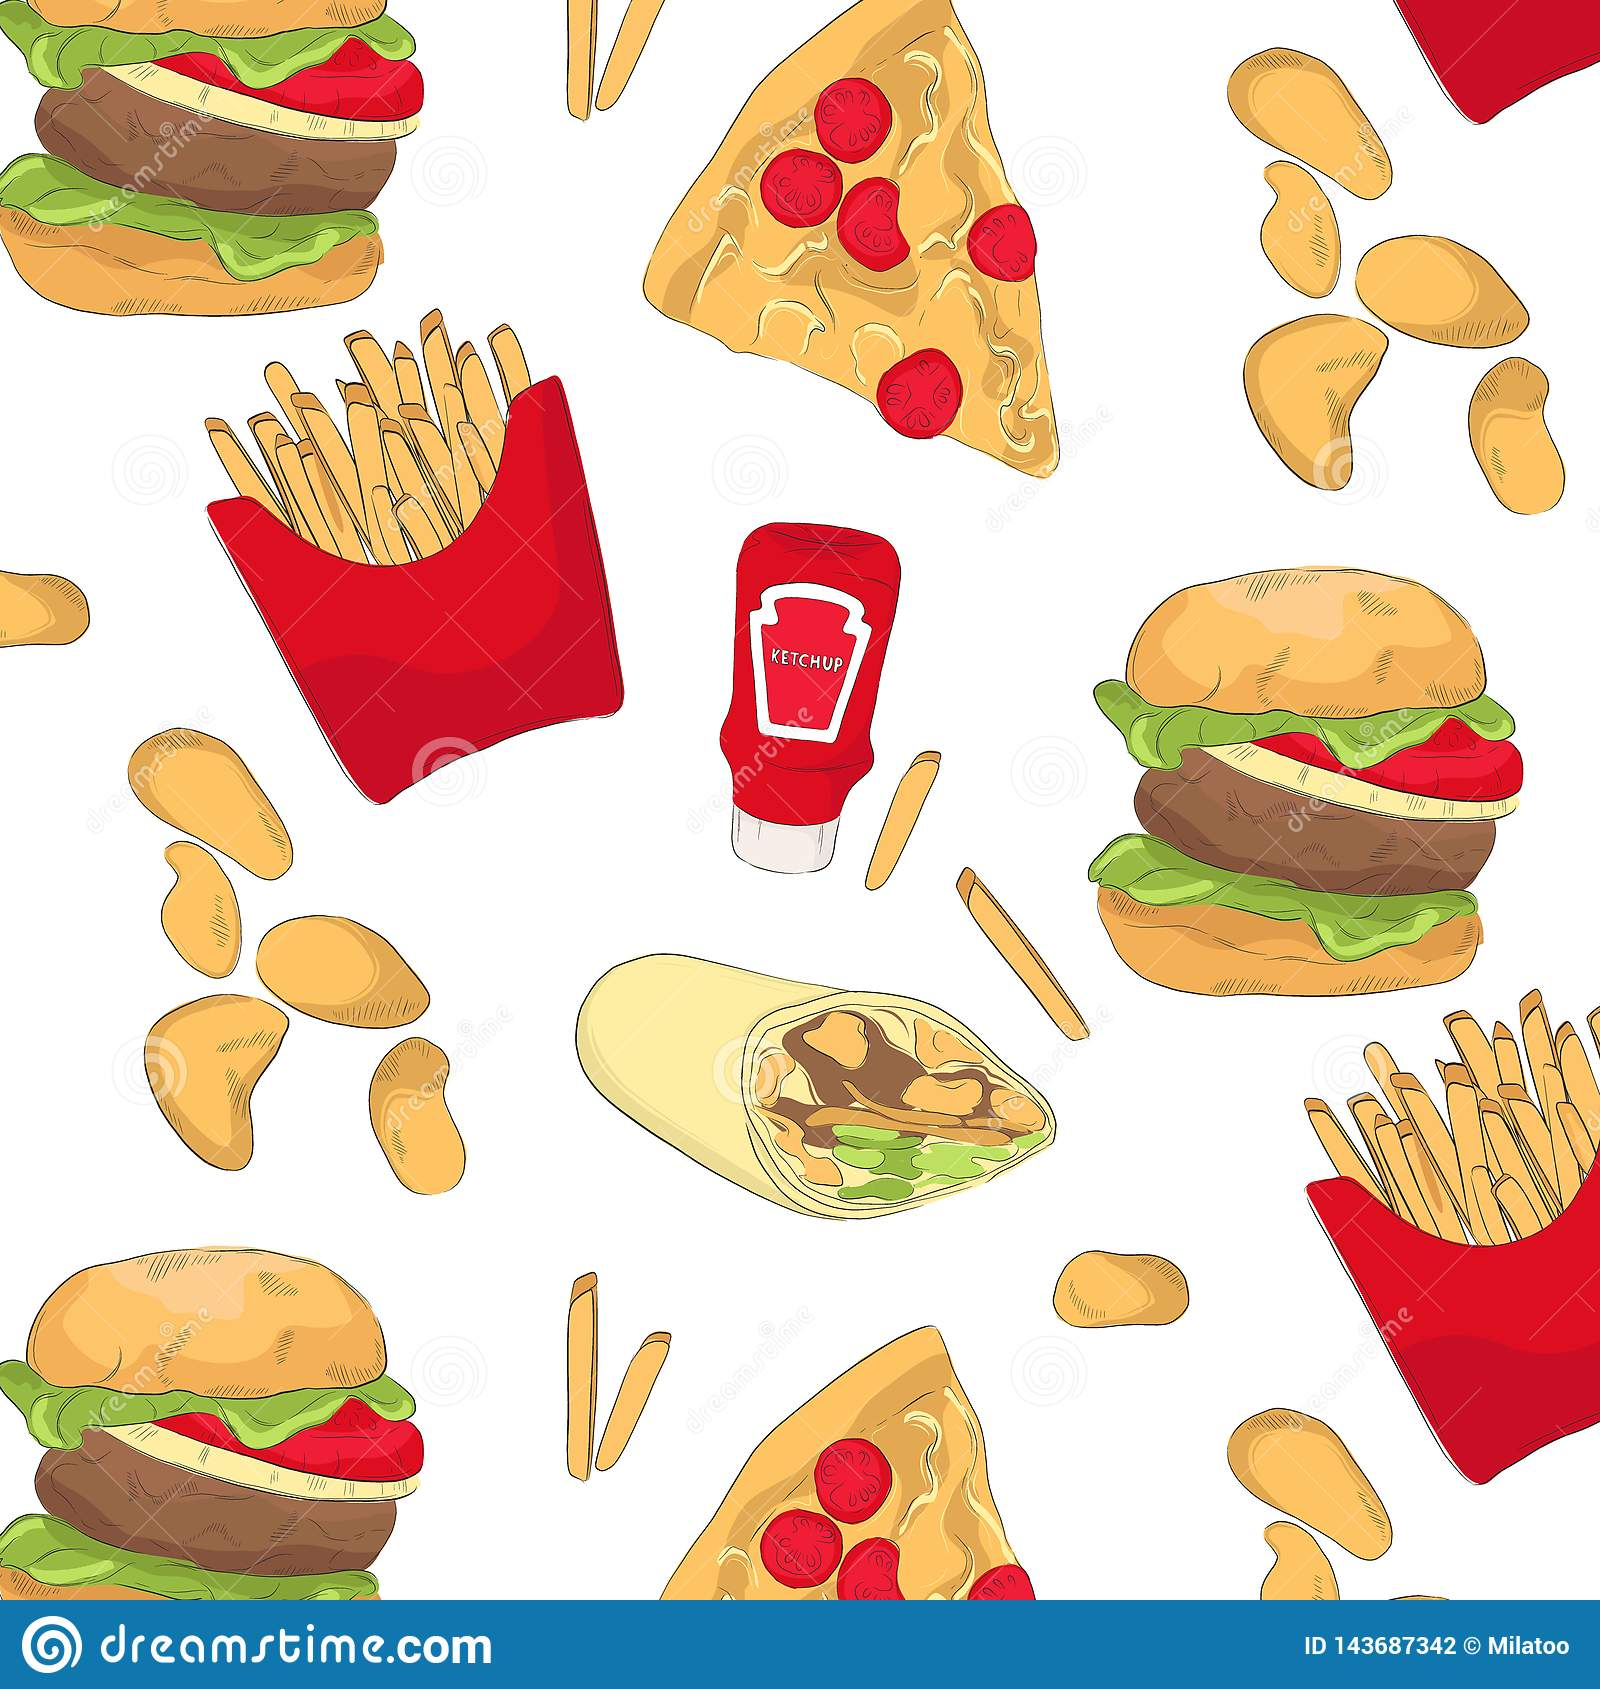 de44ee742e6c Tasty Fast Food Pattern With Chips, Burger, Pizza, Ketchup, Wrap ...